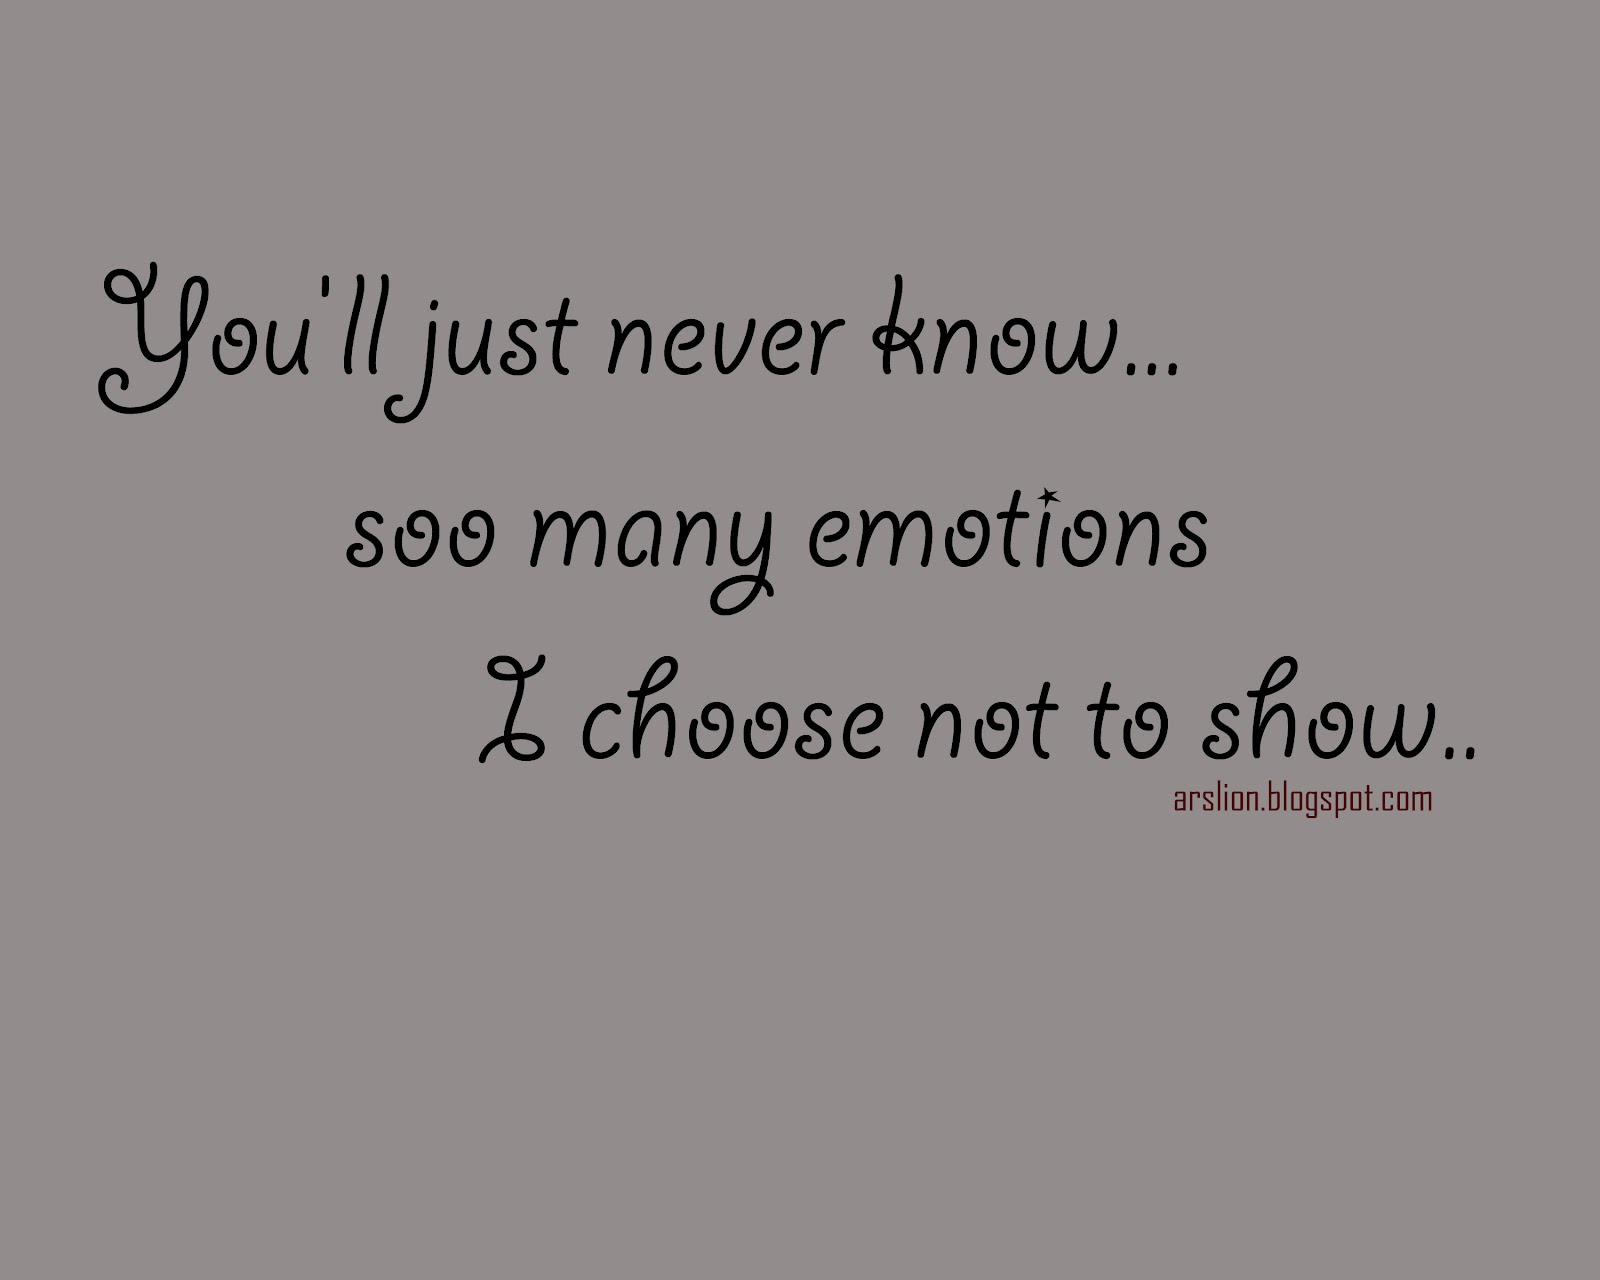 Quotes About Not Showing Emotions. QuotesGram